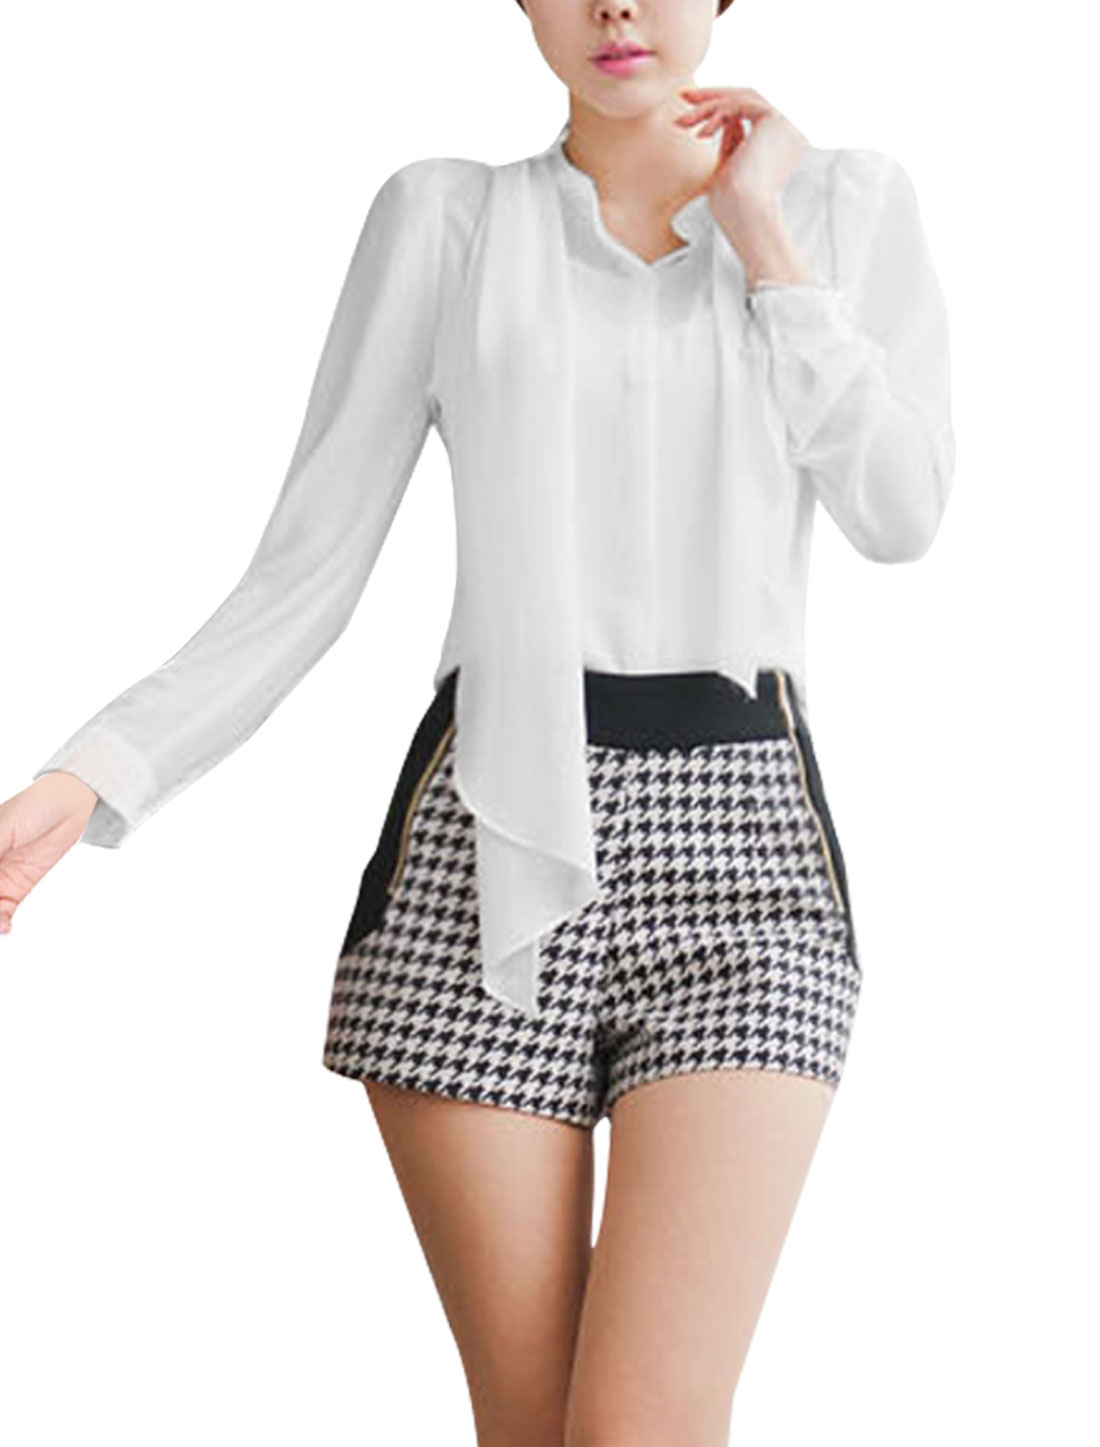 Ladies White Puff Sleeves Self Tie Bowtie Casual Chiffon Shirt XS